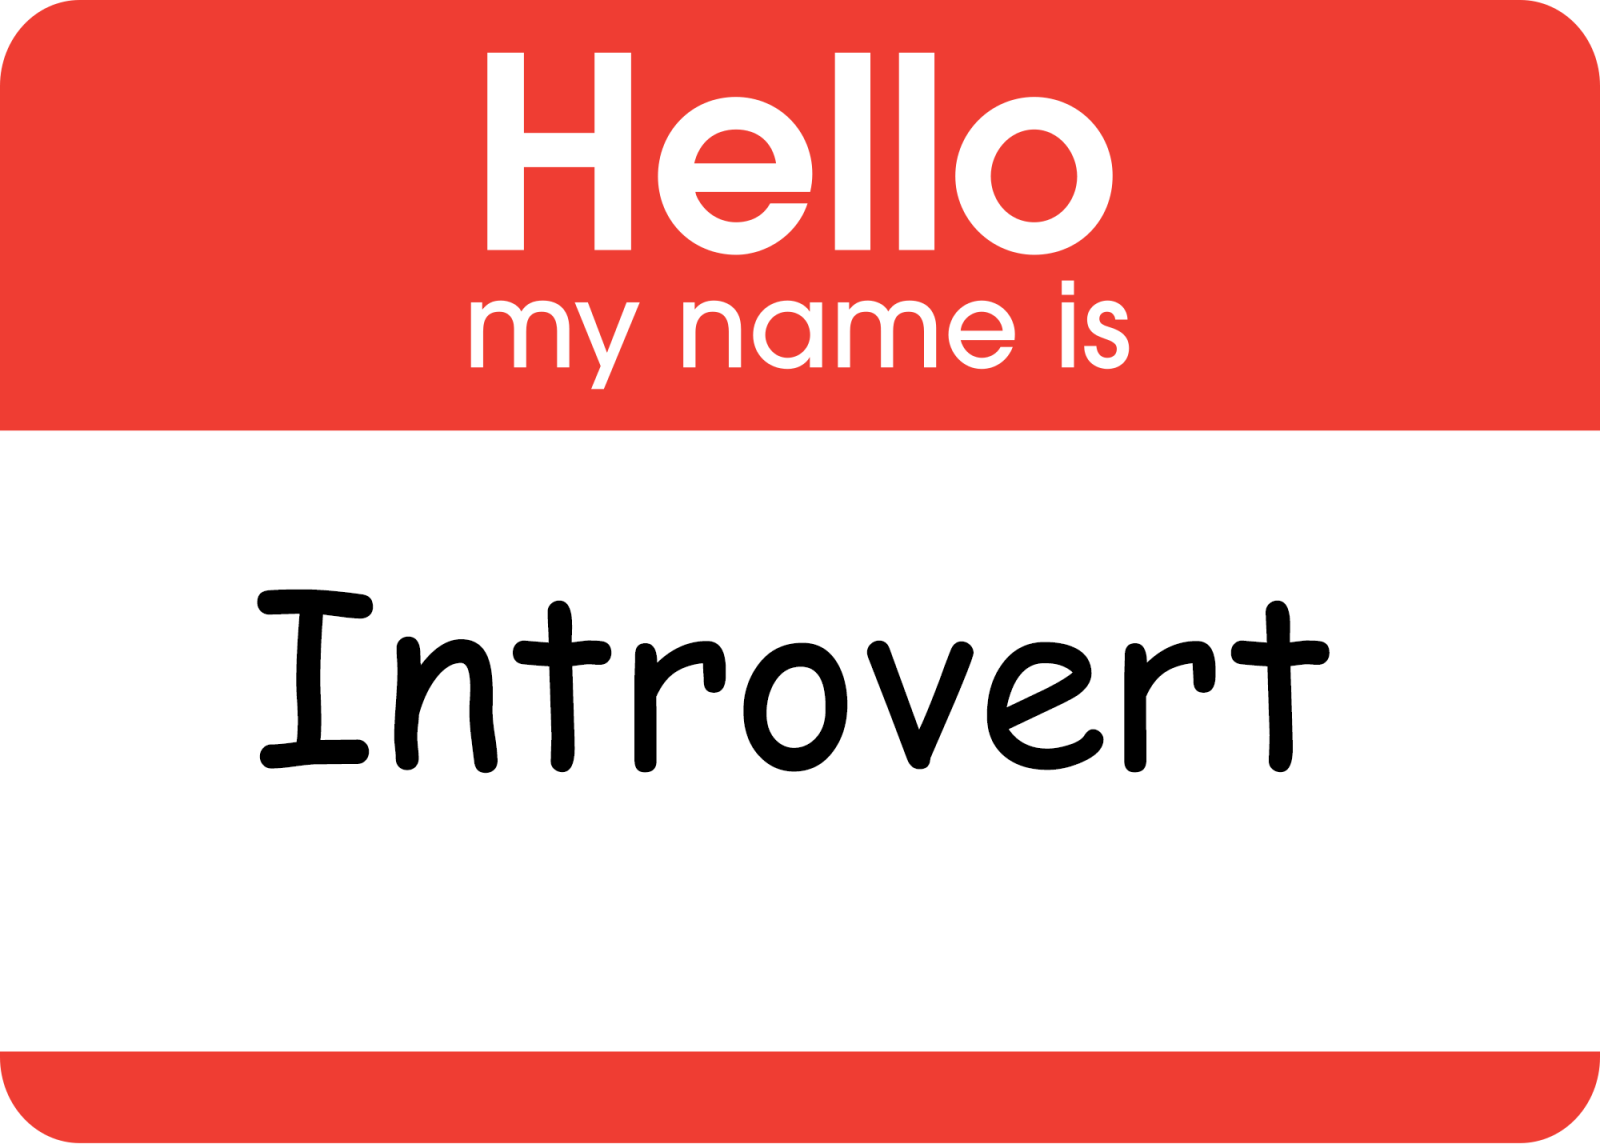 How HR introverts can grab the CEO's attention